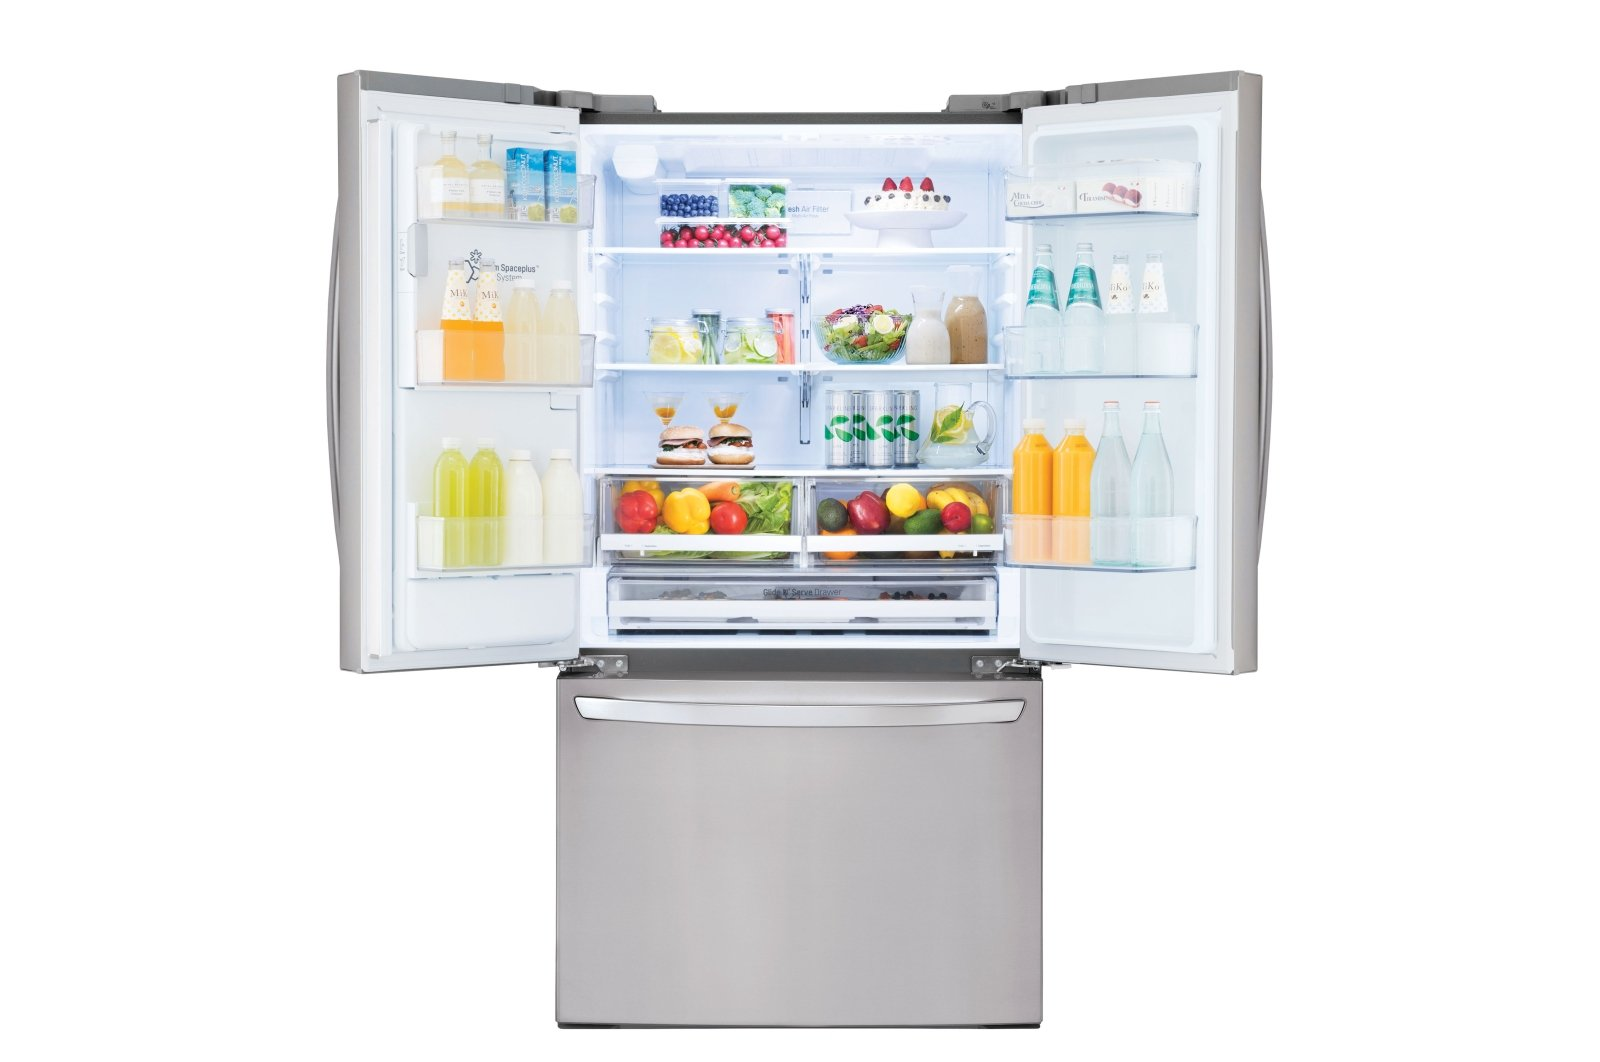 LG 26.2 cu. ft. French Door Smart Refrigerator - 36 Inch Stainless Steel